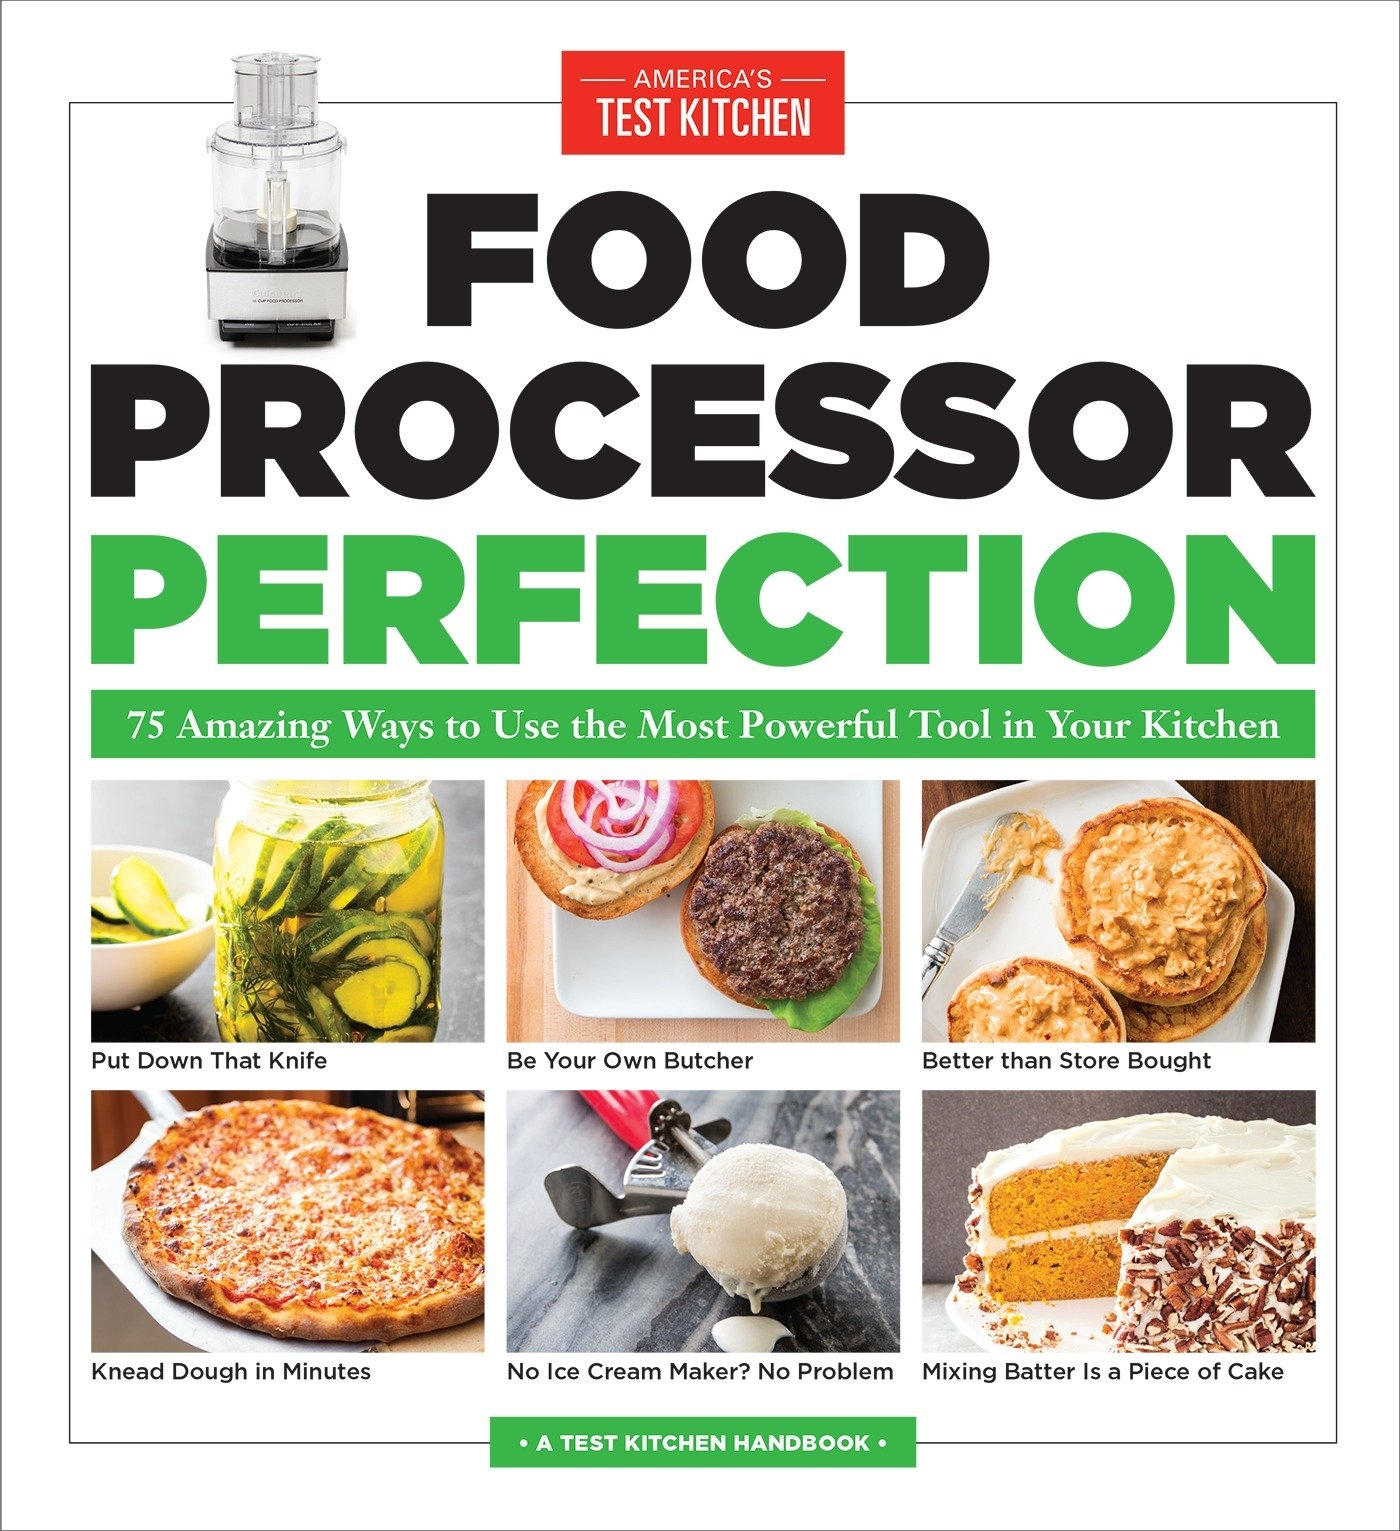 Food processor perfection 75 amazing ways to use the most powerful food processor perfection 75 amazing ways to use the most powerful tool in your kitchen americas test kitchen 9781940352909 amazon books forumfinder Gallery